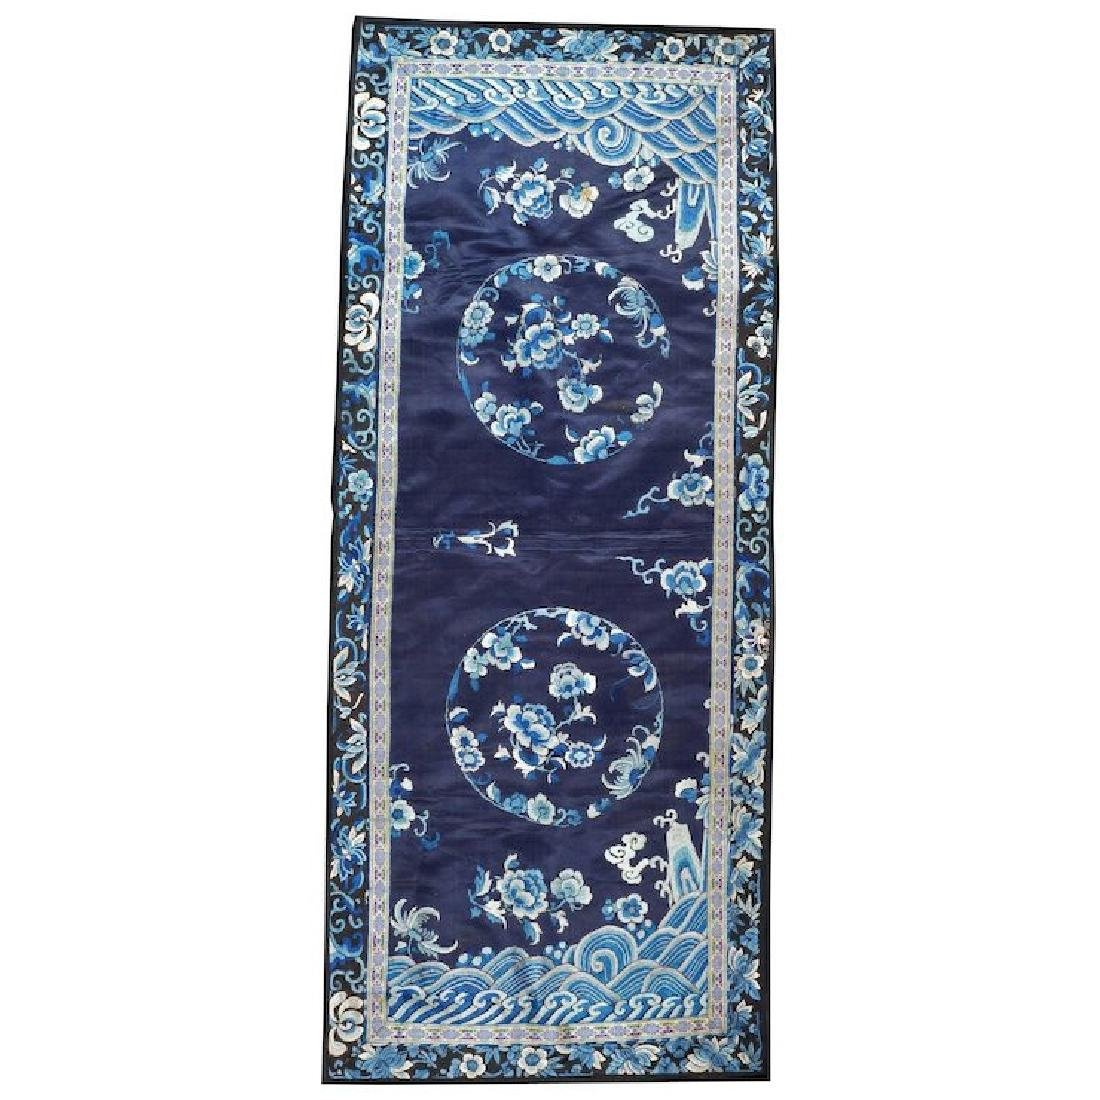 Antique Chinese silk embroidery blue on blue with waves